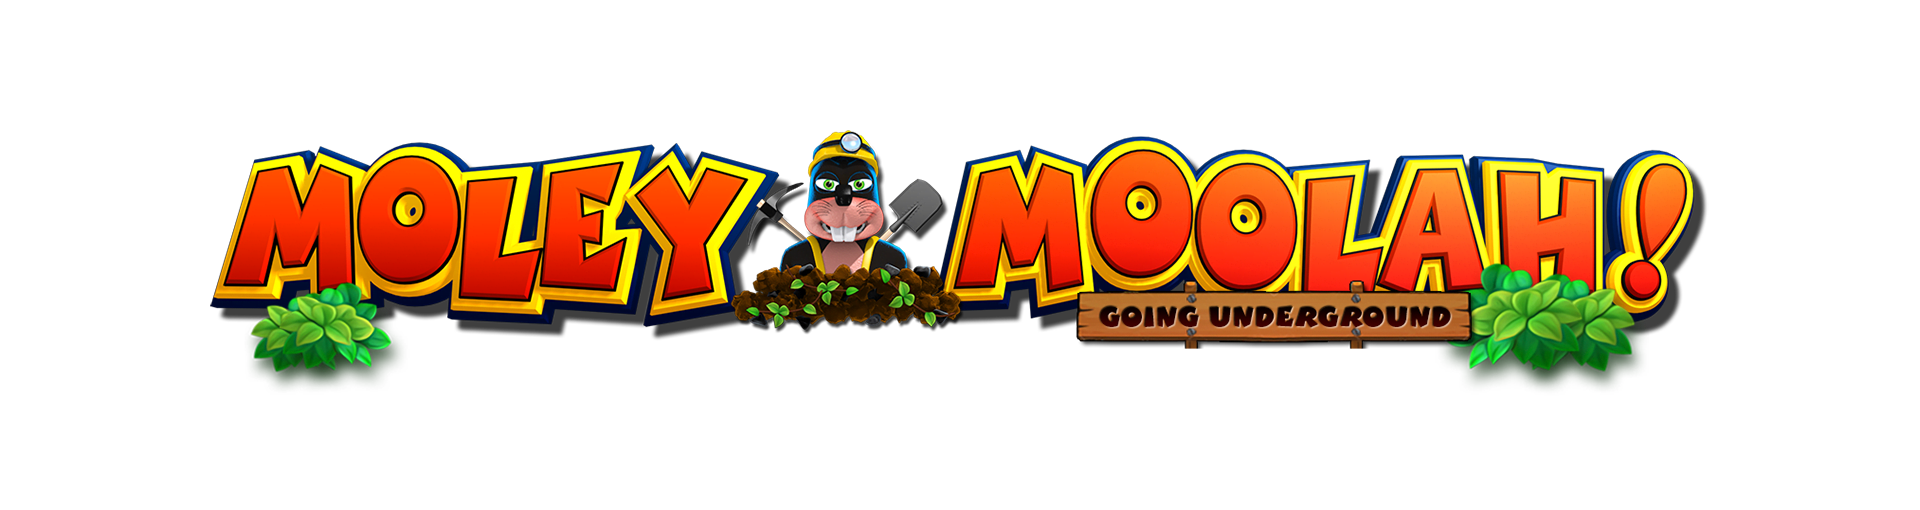 Yggdrasil-upcoming-game-LOGO-2a-Moley